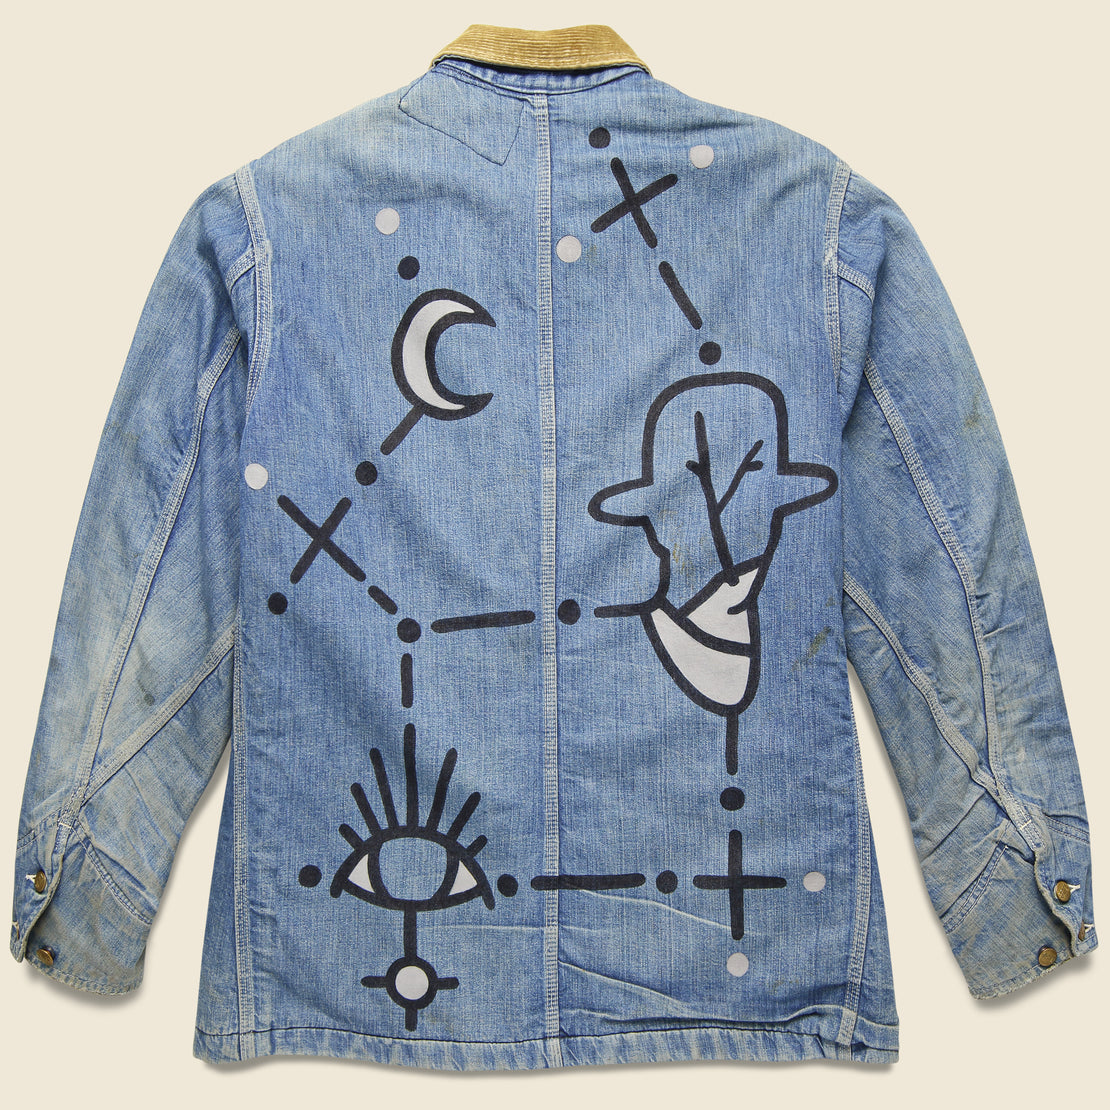 Vintage Lee Blanket-Lined Denim Chore Coat - Dot Constellation